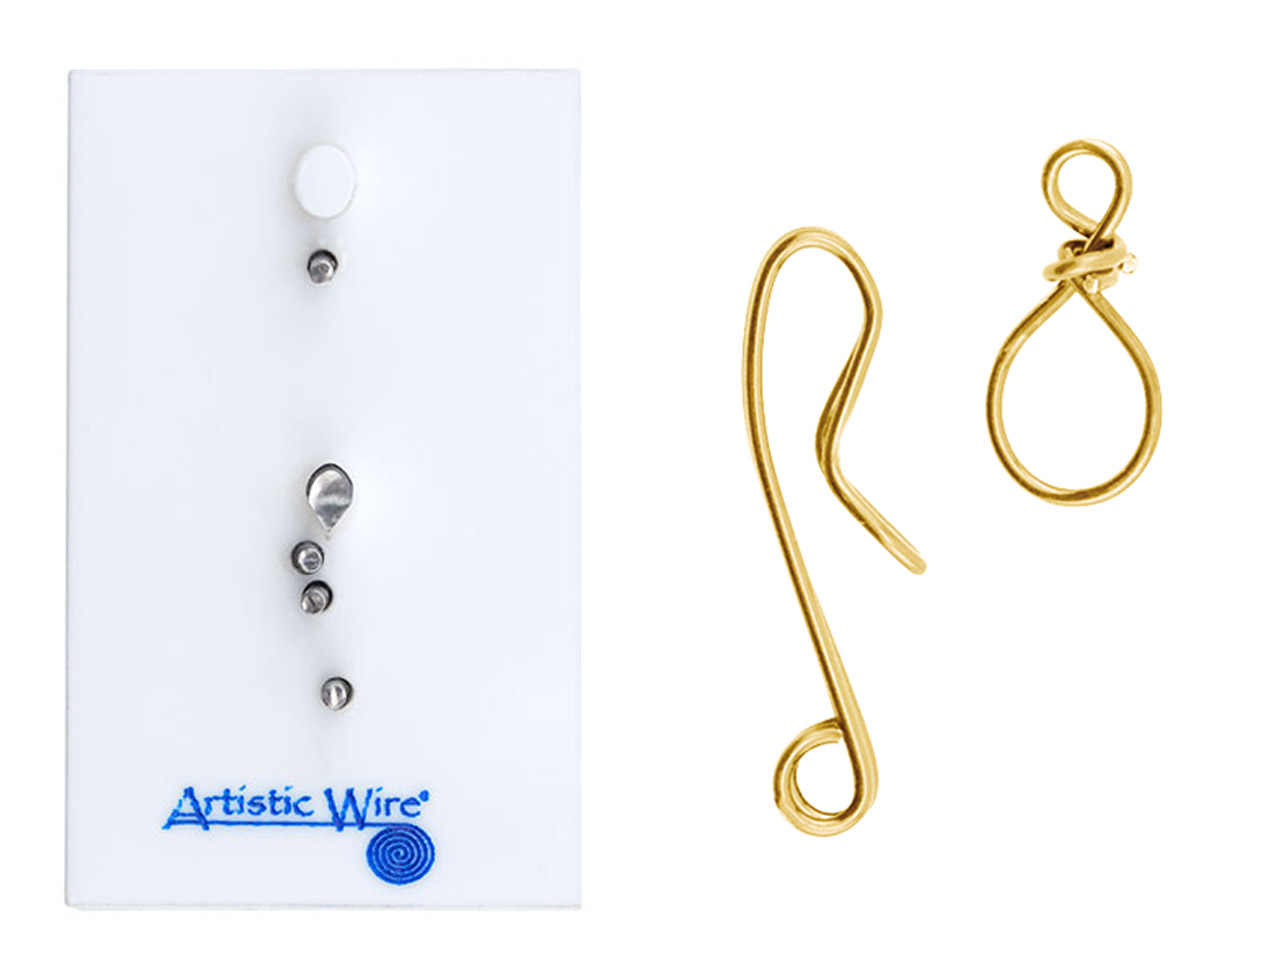 Beadalon Artistic Wire Findings    Forms Hook And Eye Clasp Jig